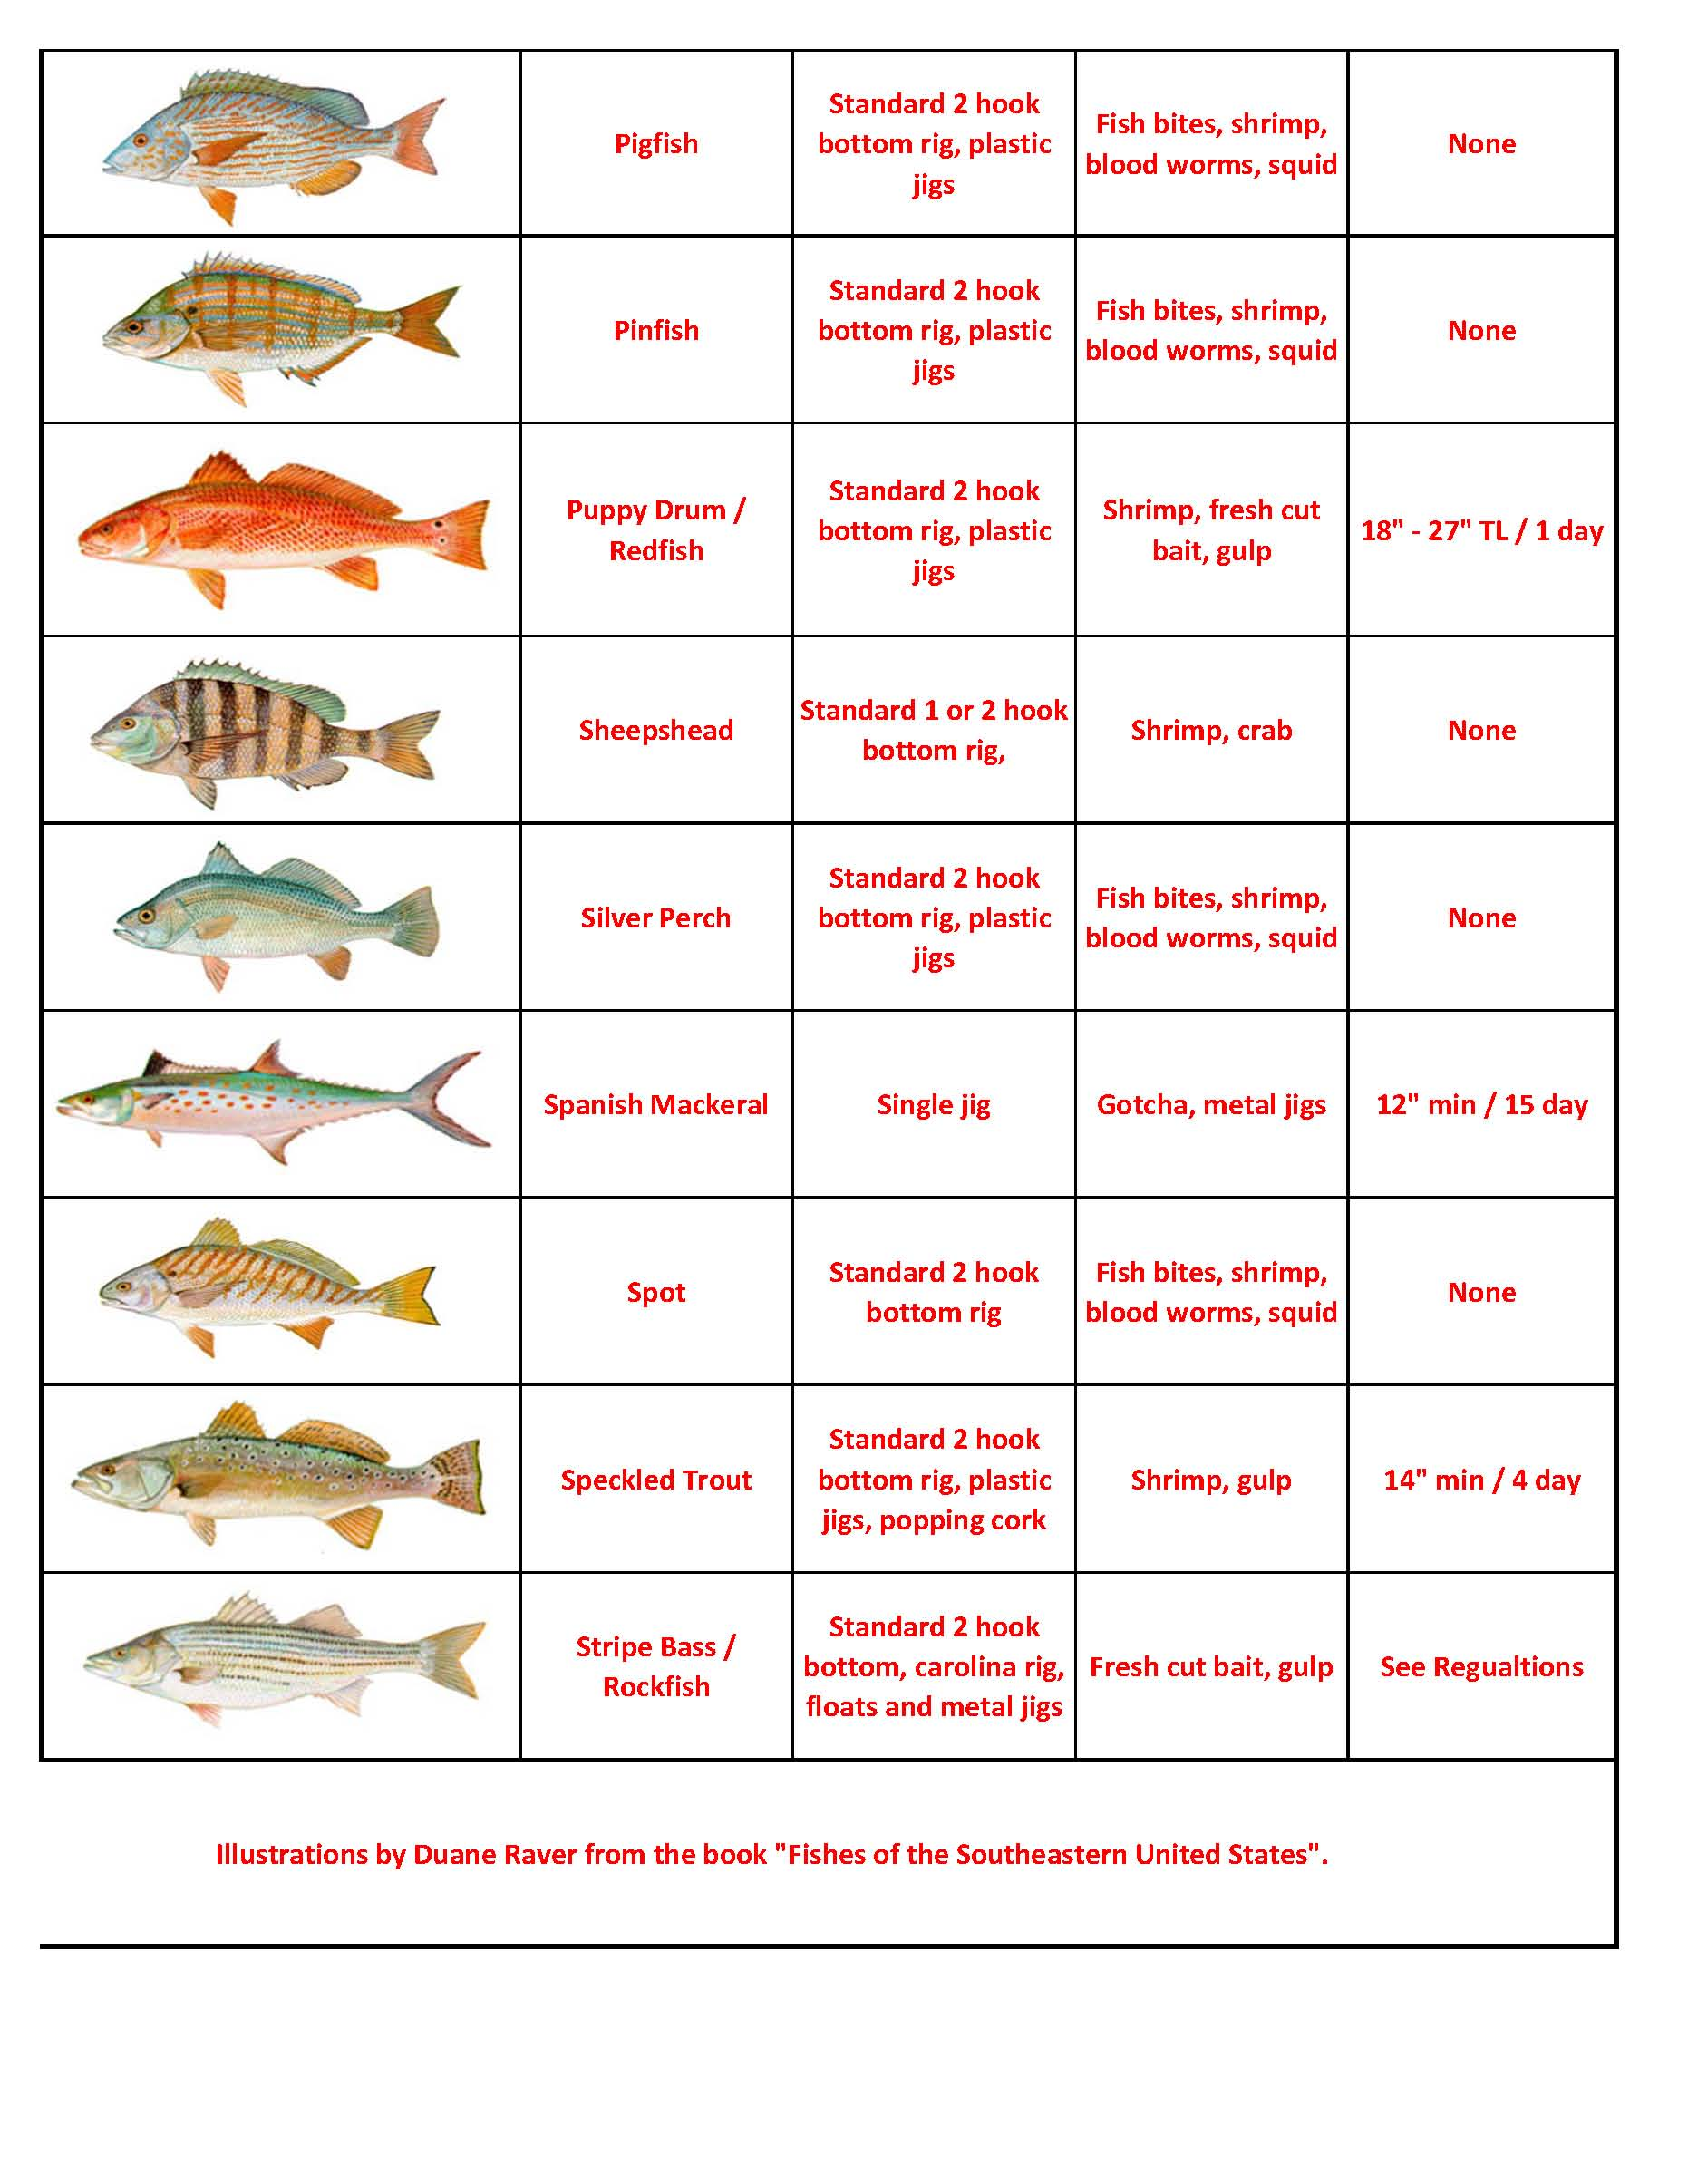 Quick look fish id capt tonys walkingangler draft fish id chart jan 2015page2 geenschuldenfo Image collections